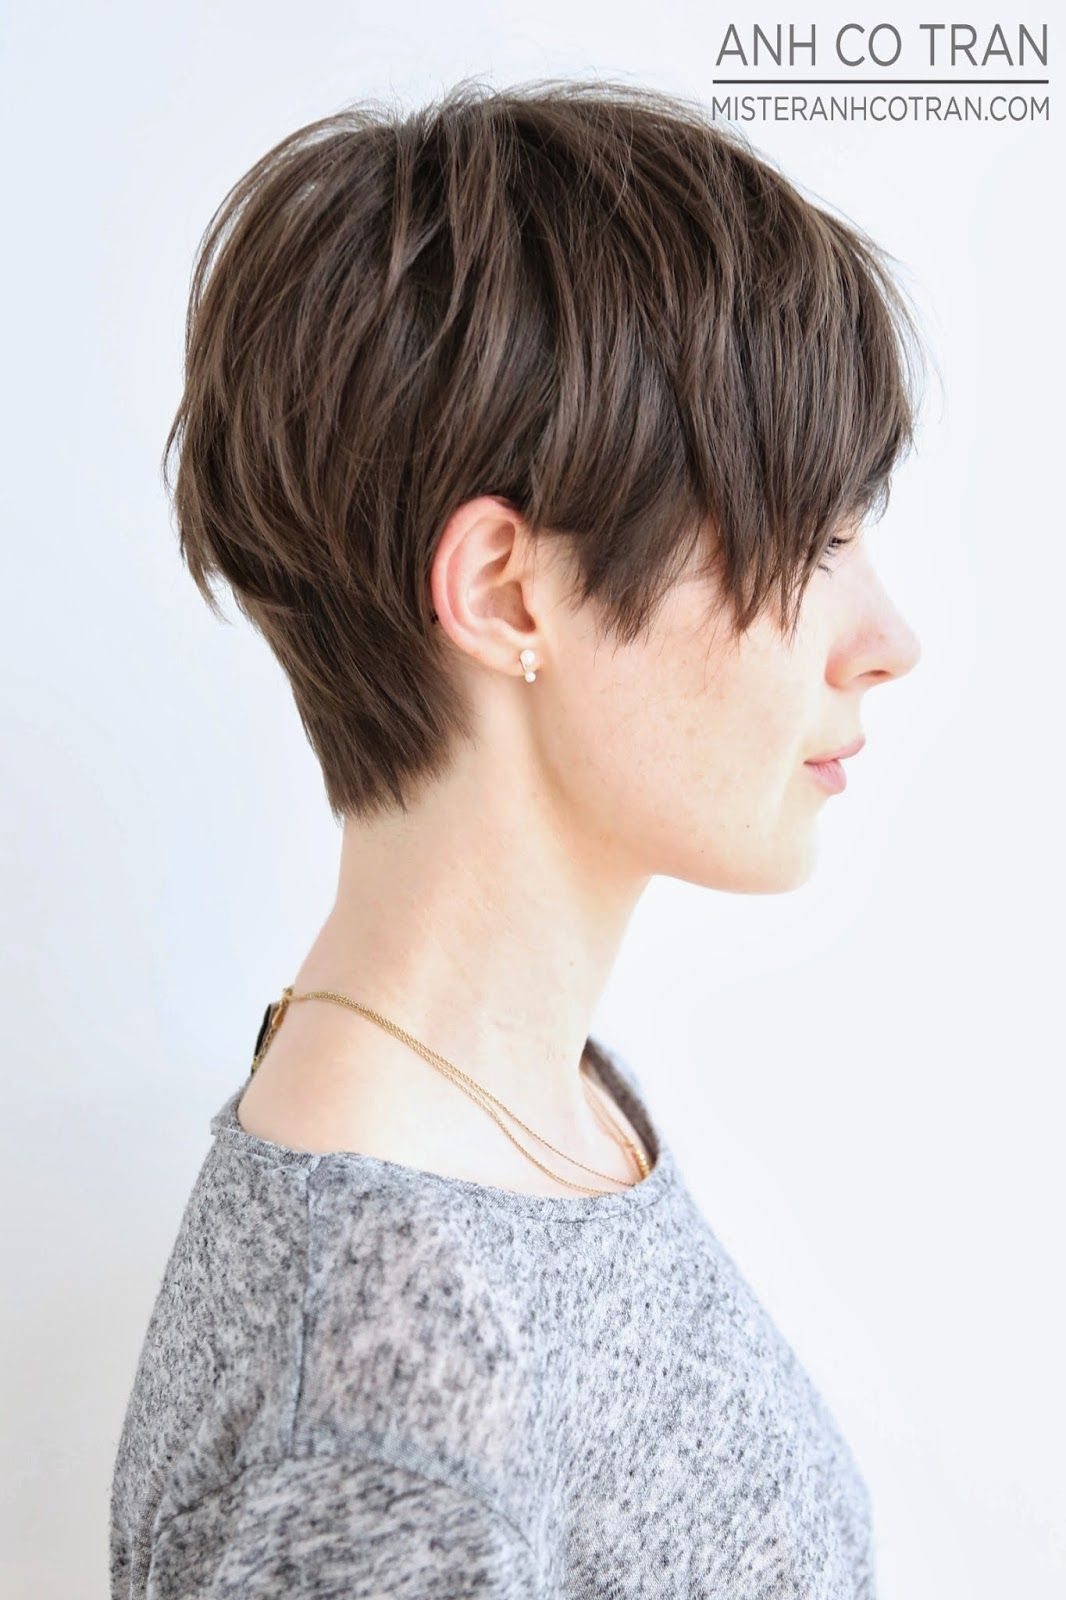 50 Awesome Pixie Haircut For Thick Hair Hairstyles Ideas